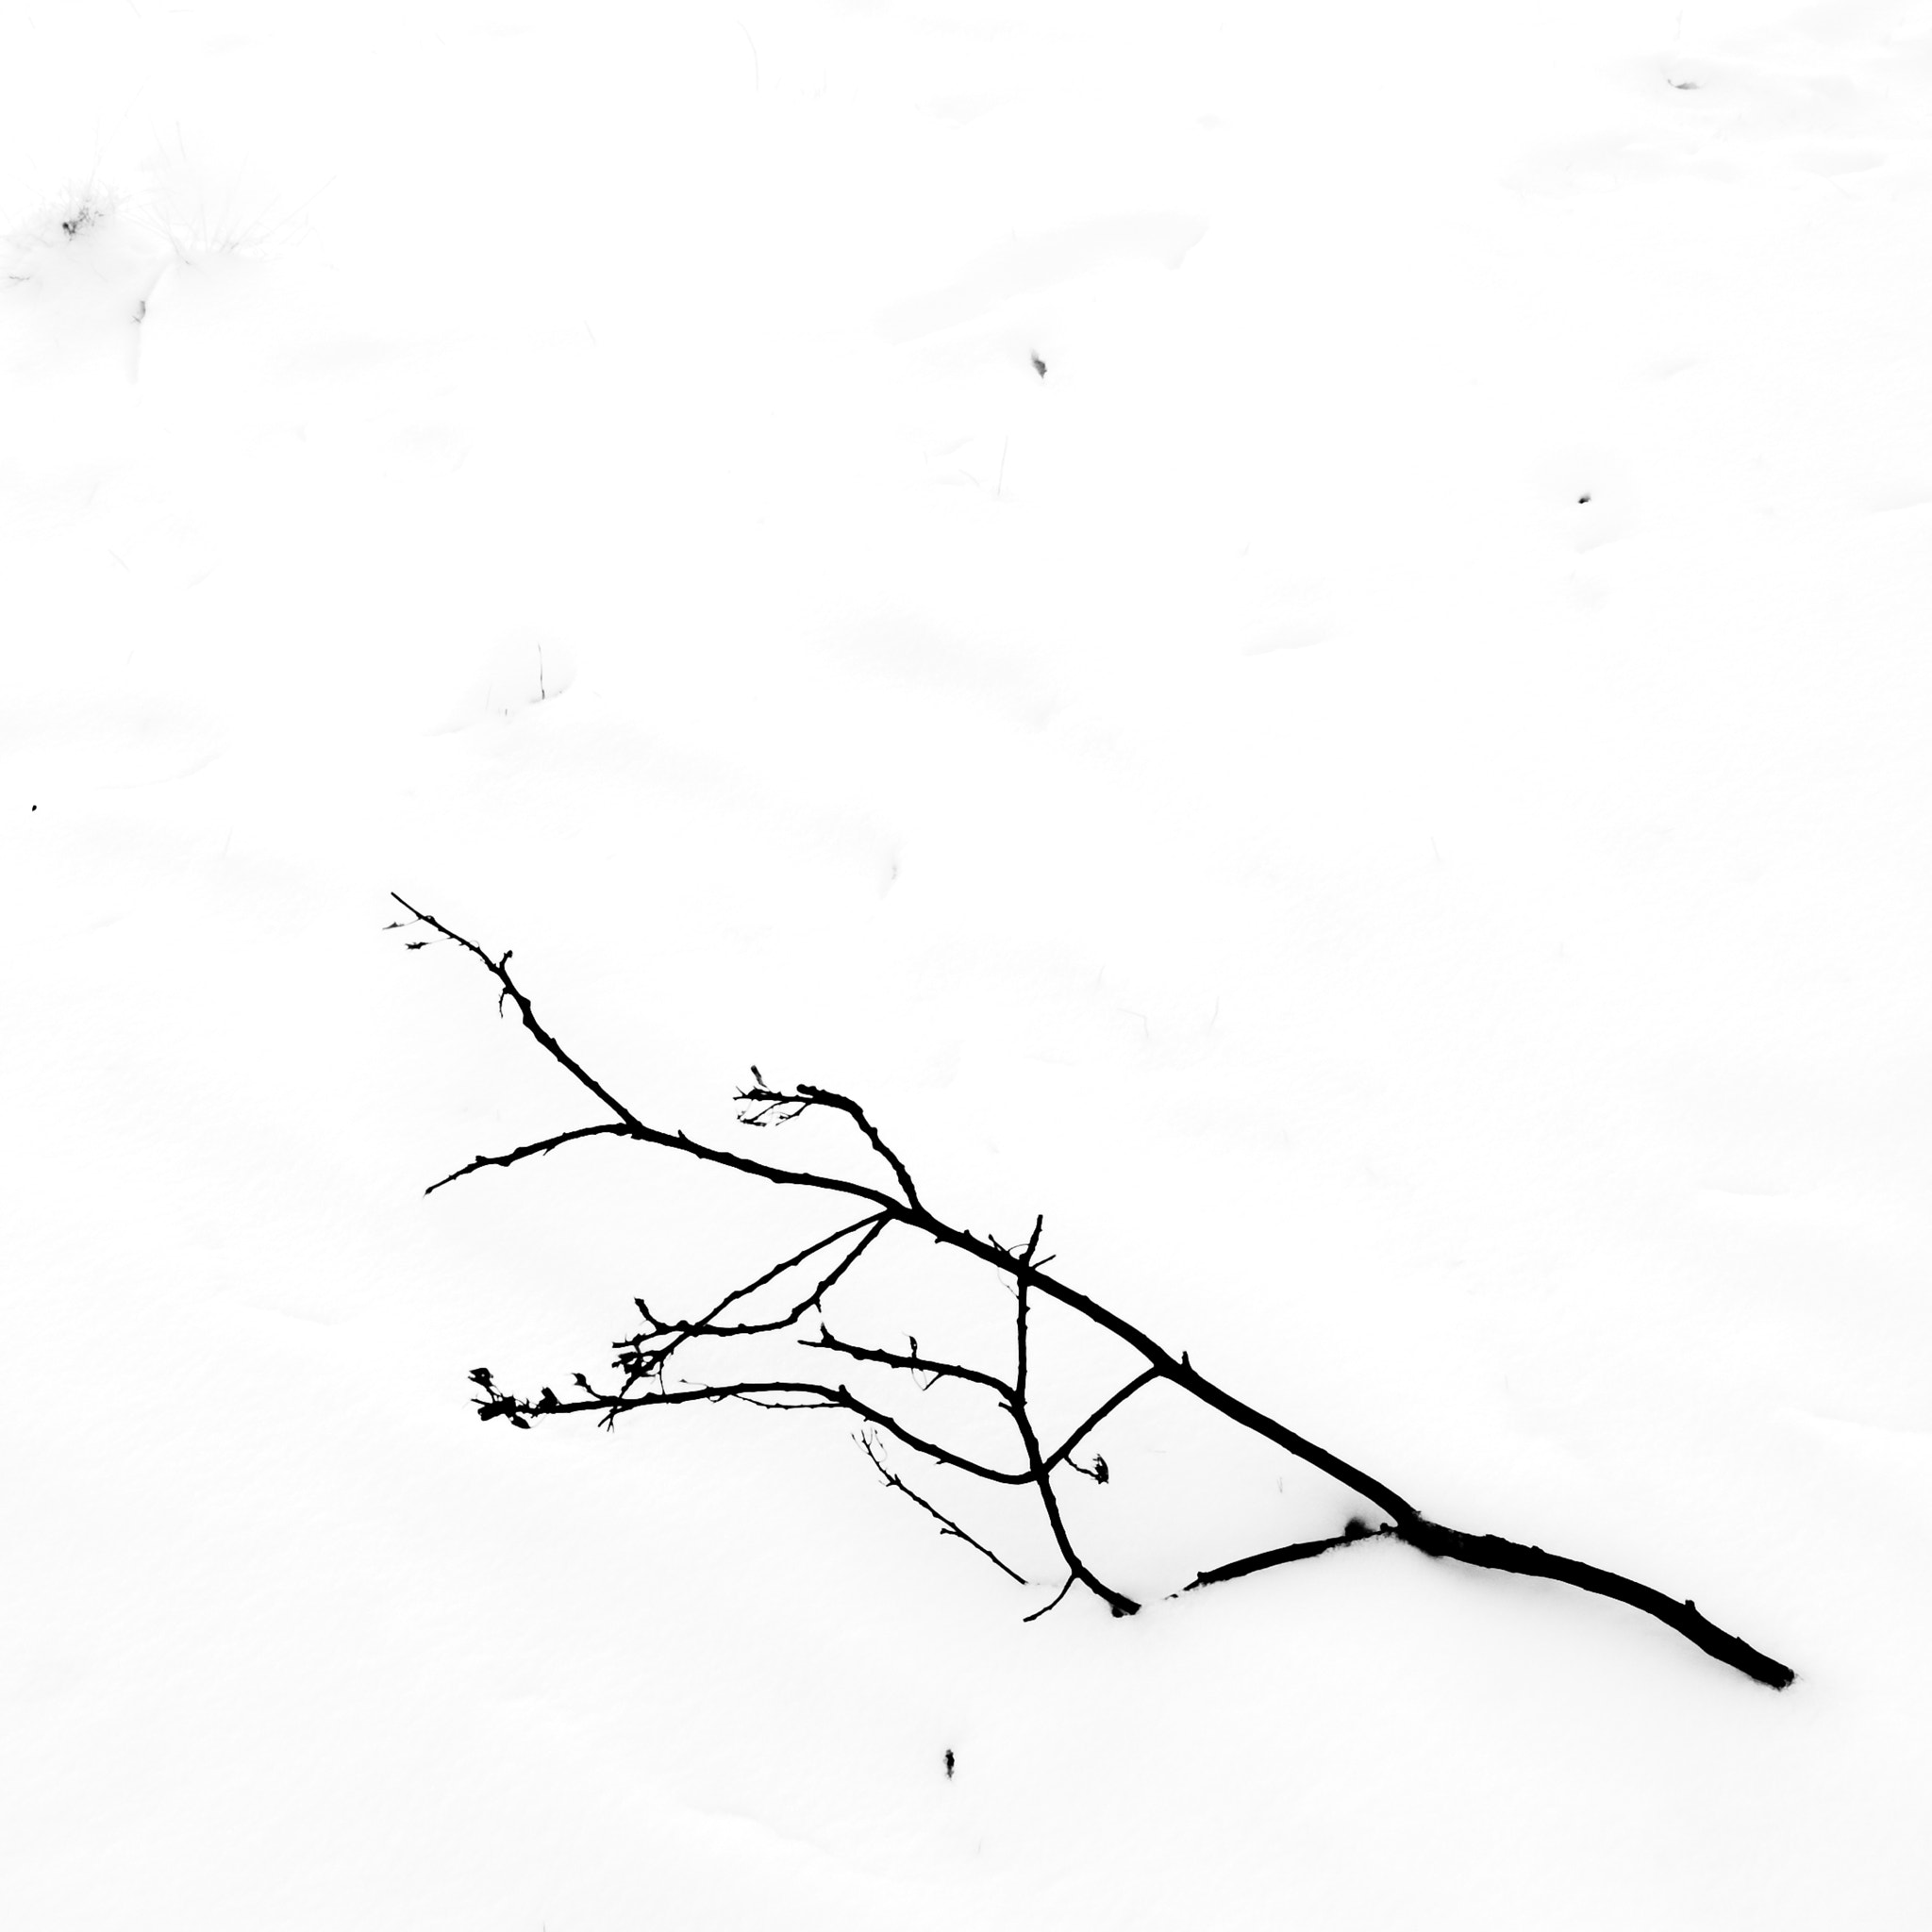 Photograph Snow Abstractions 4 by Chris Maskell on 500px